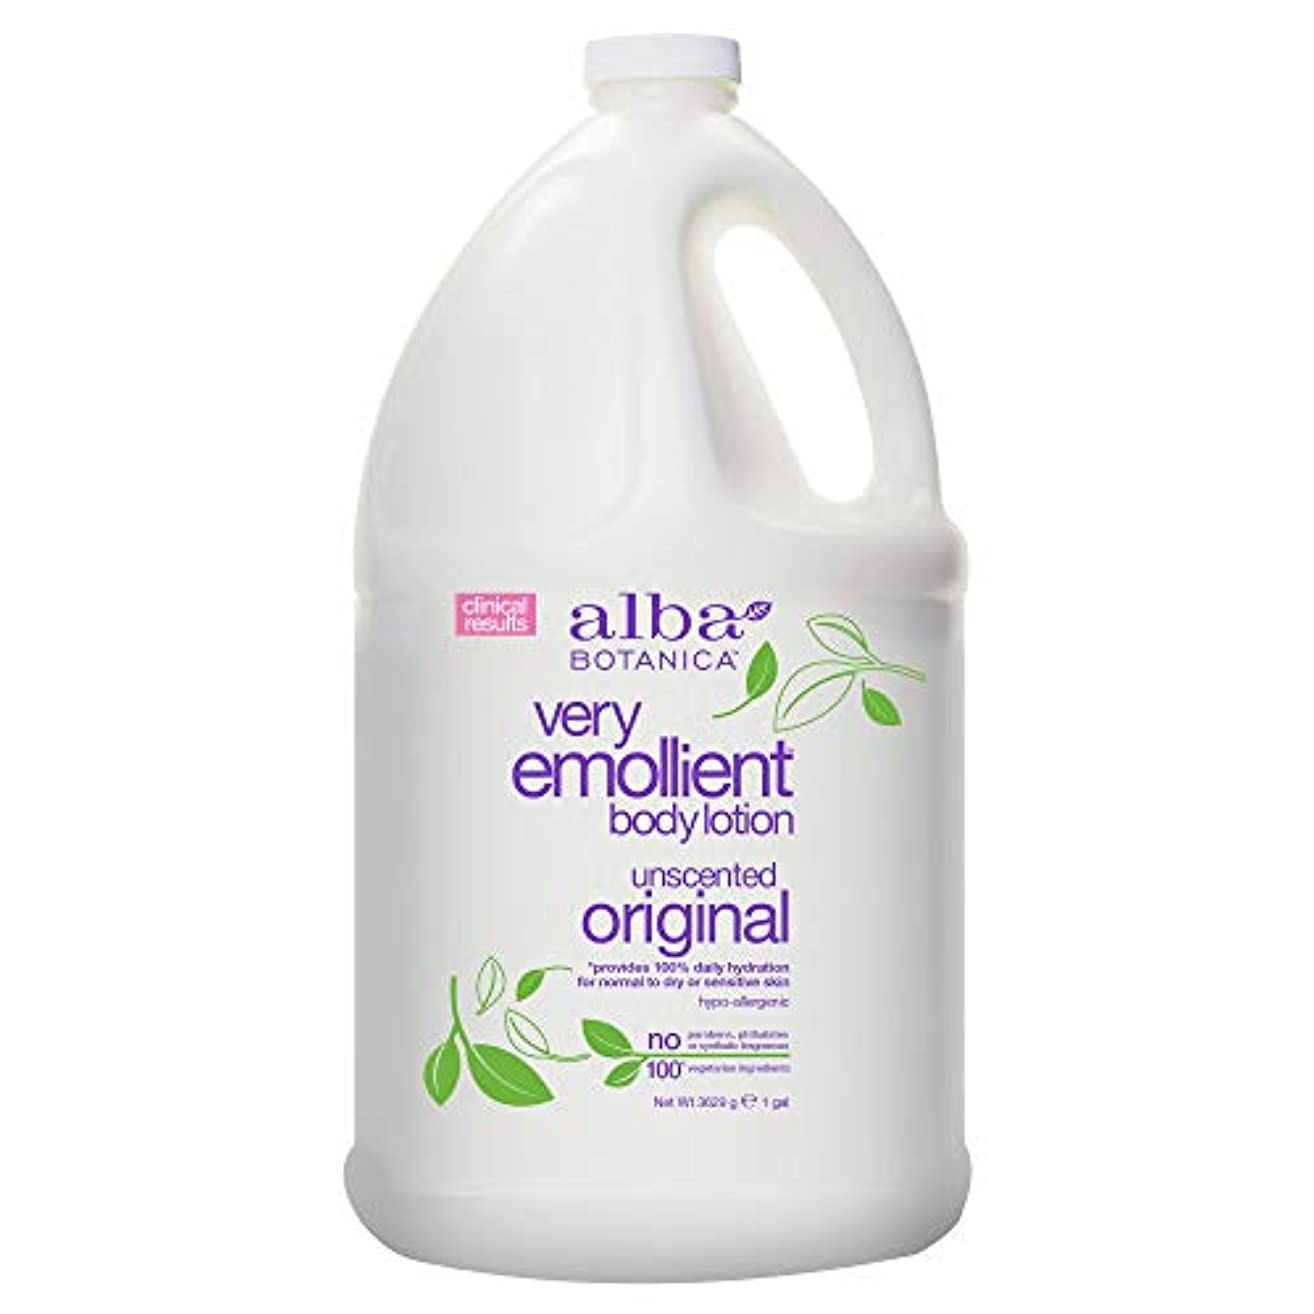 フルーティー洗う振動させるAlba Botanica Very Emollient Body Lotion Original Unscented - 1 Gallon